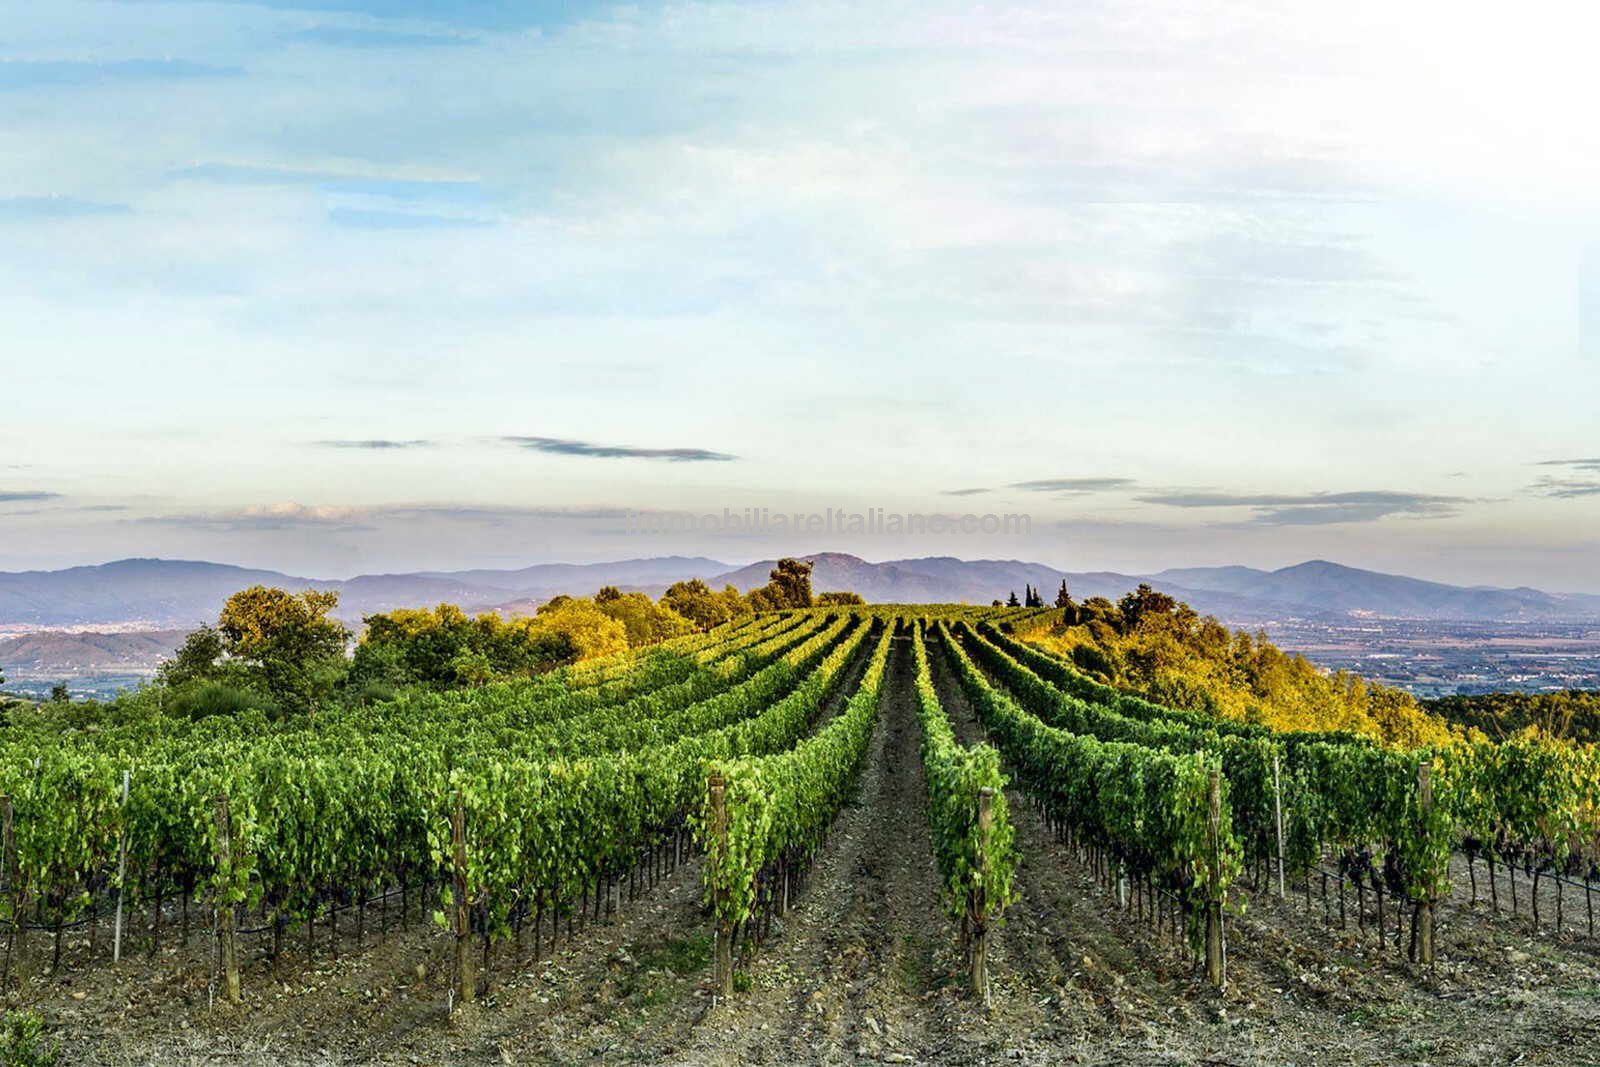 View of the Vineyards at this Tuscan organic Winery